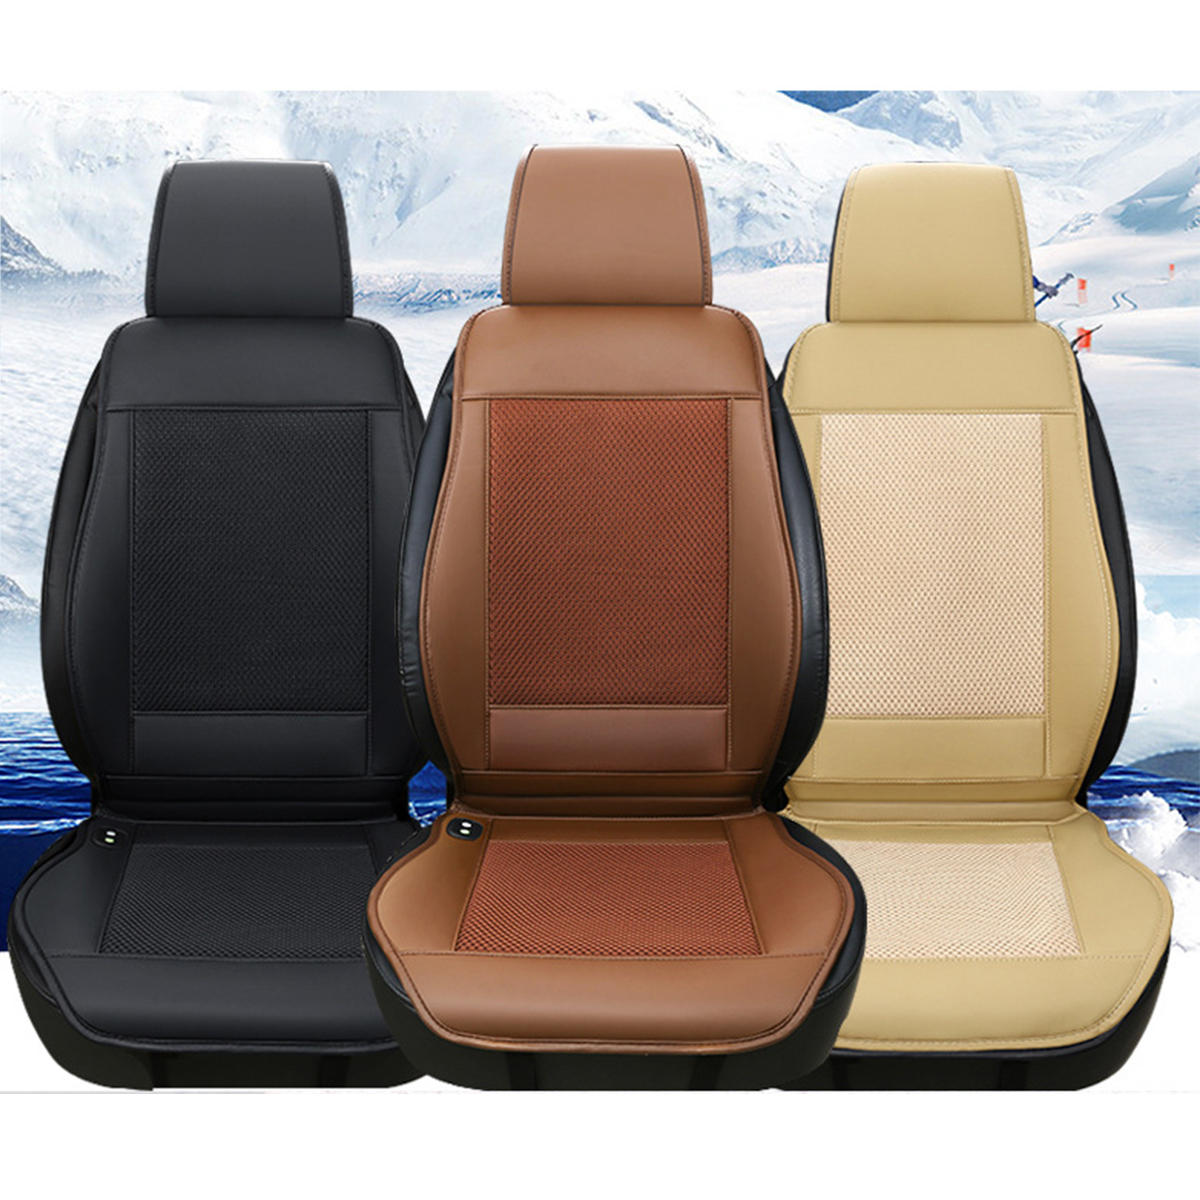 Purchase Best Car Seat Cooling Pad, Best Car Seat Cooling Pad